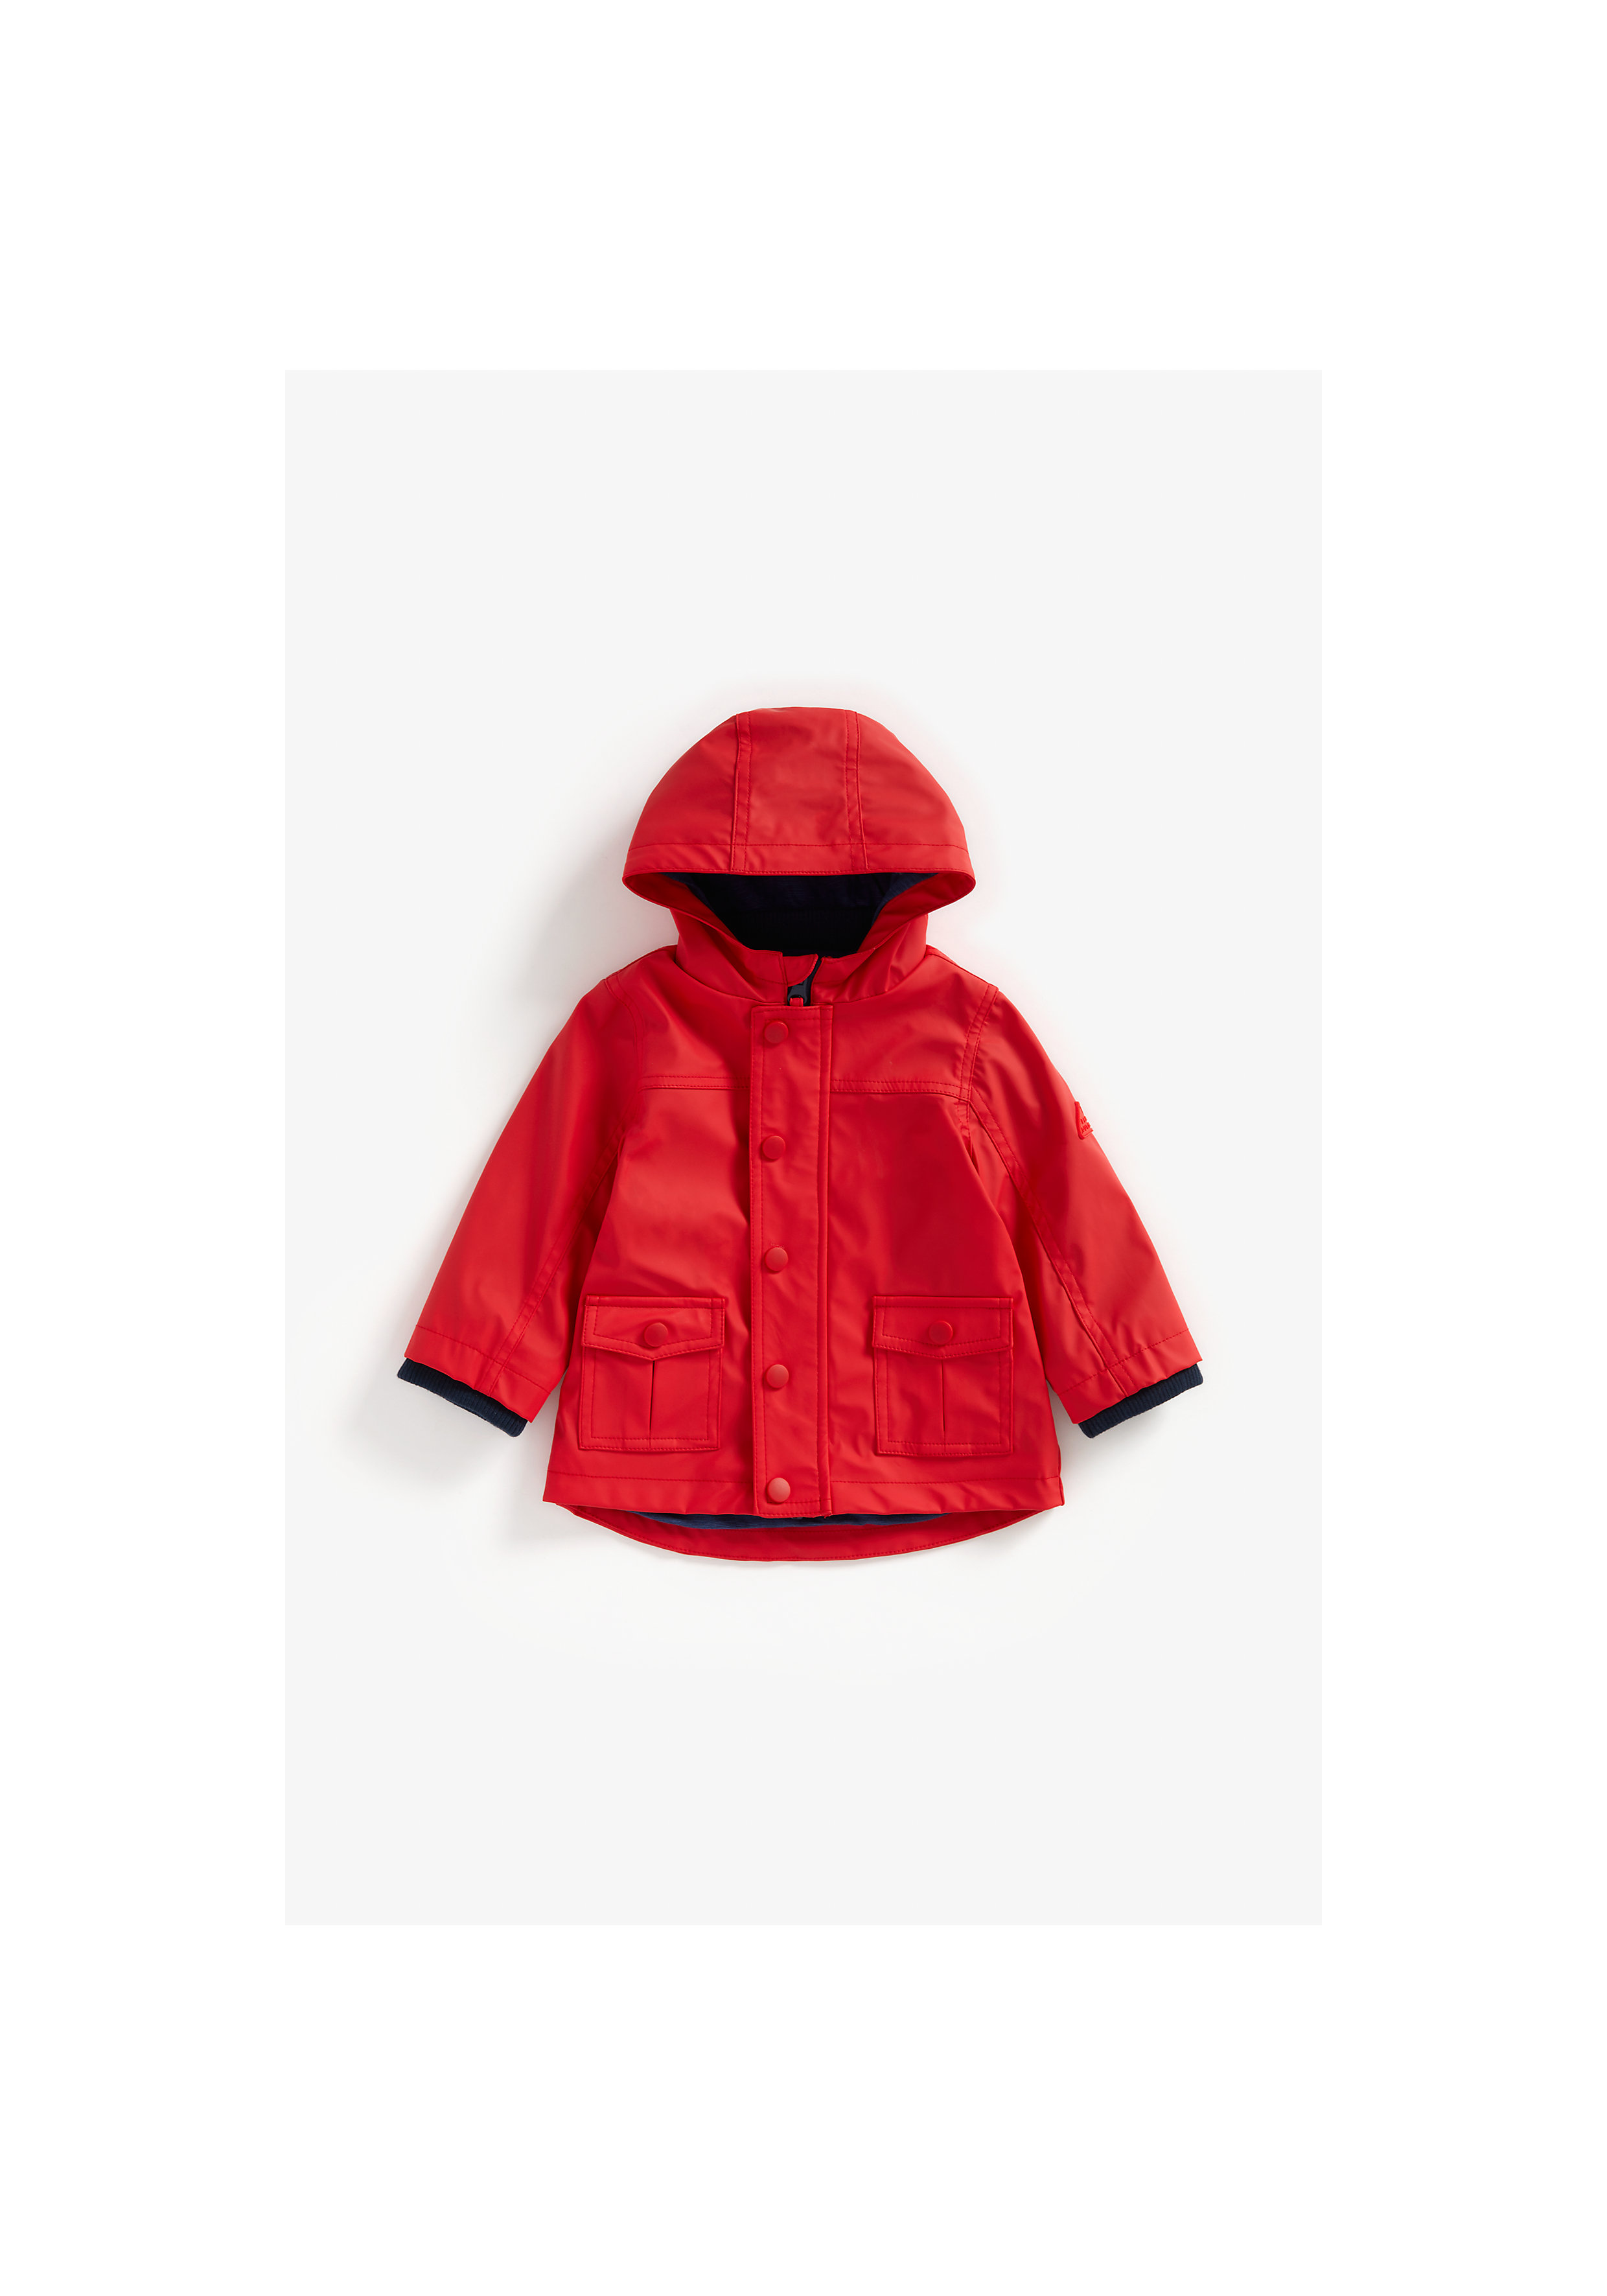 Mothercare | Boys Full Sleeves Jacket Pocket Detail - Red